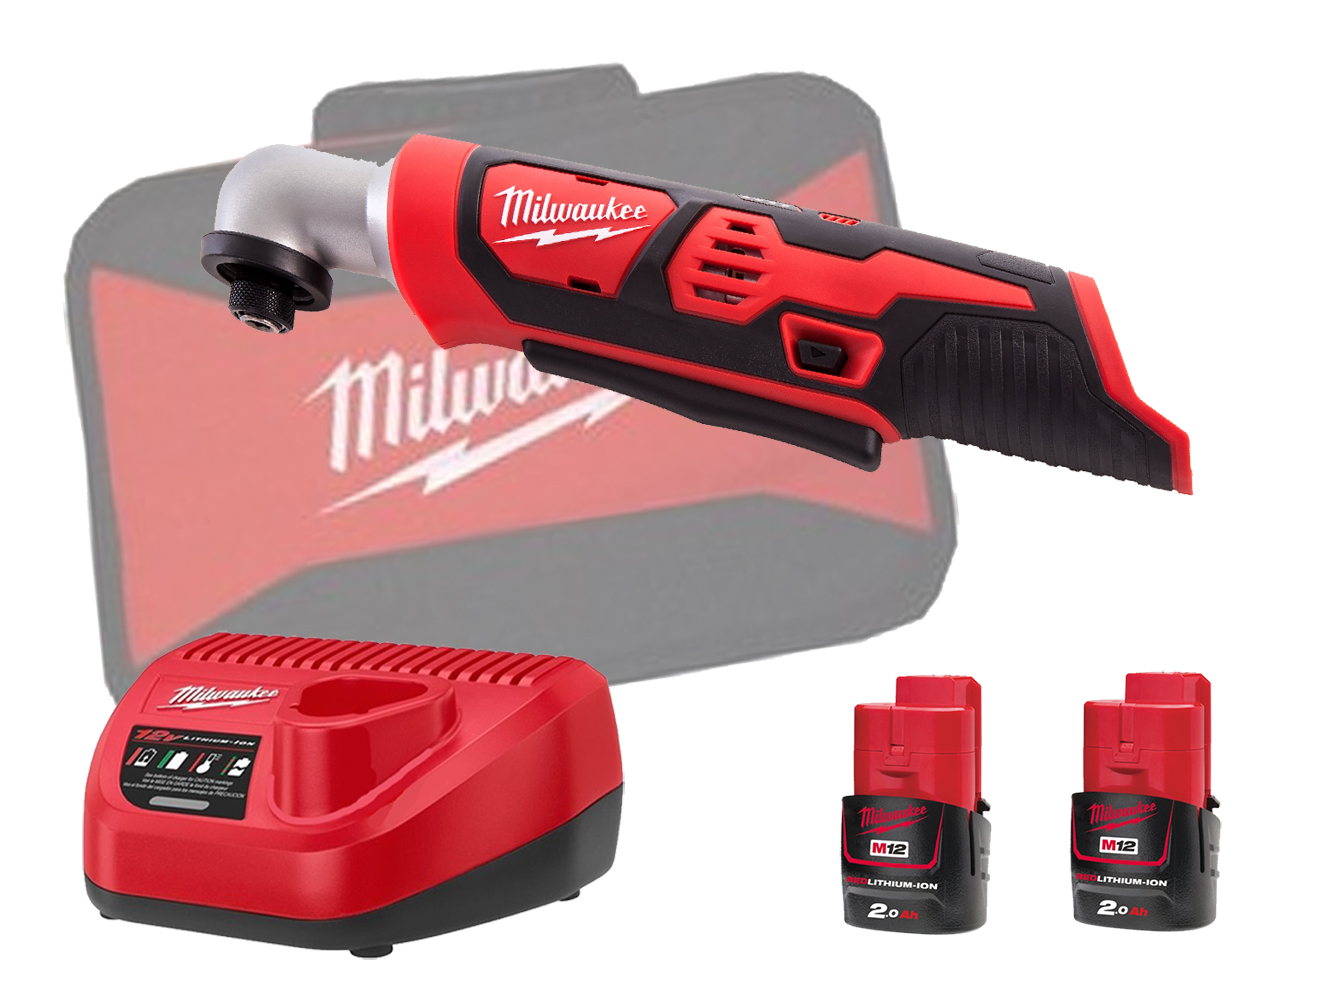 MILWAUKEE 12V RIGHT ANGLE IMPACT - M12BRAID - 2.0AH PACK